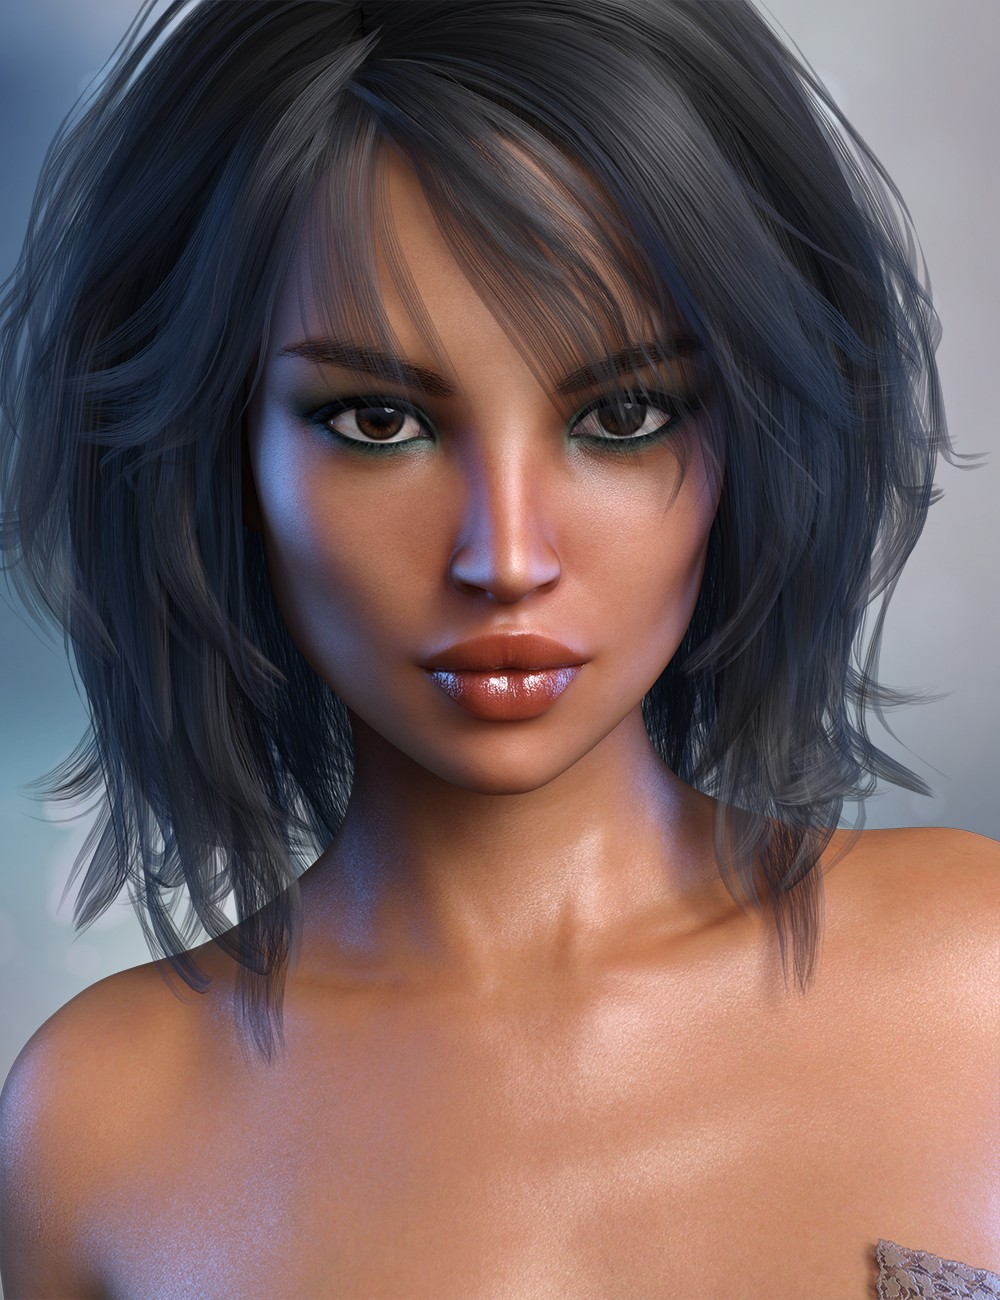 Download Daz Studio 3 For Free Daz 3d Fwsa Eliya Hd